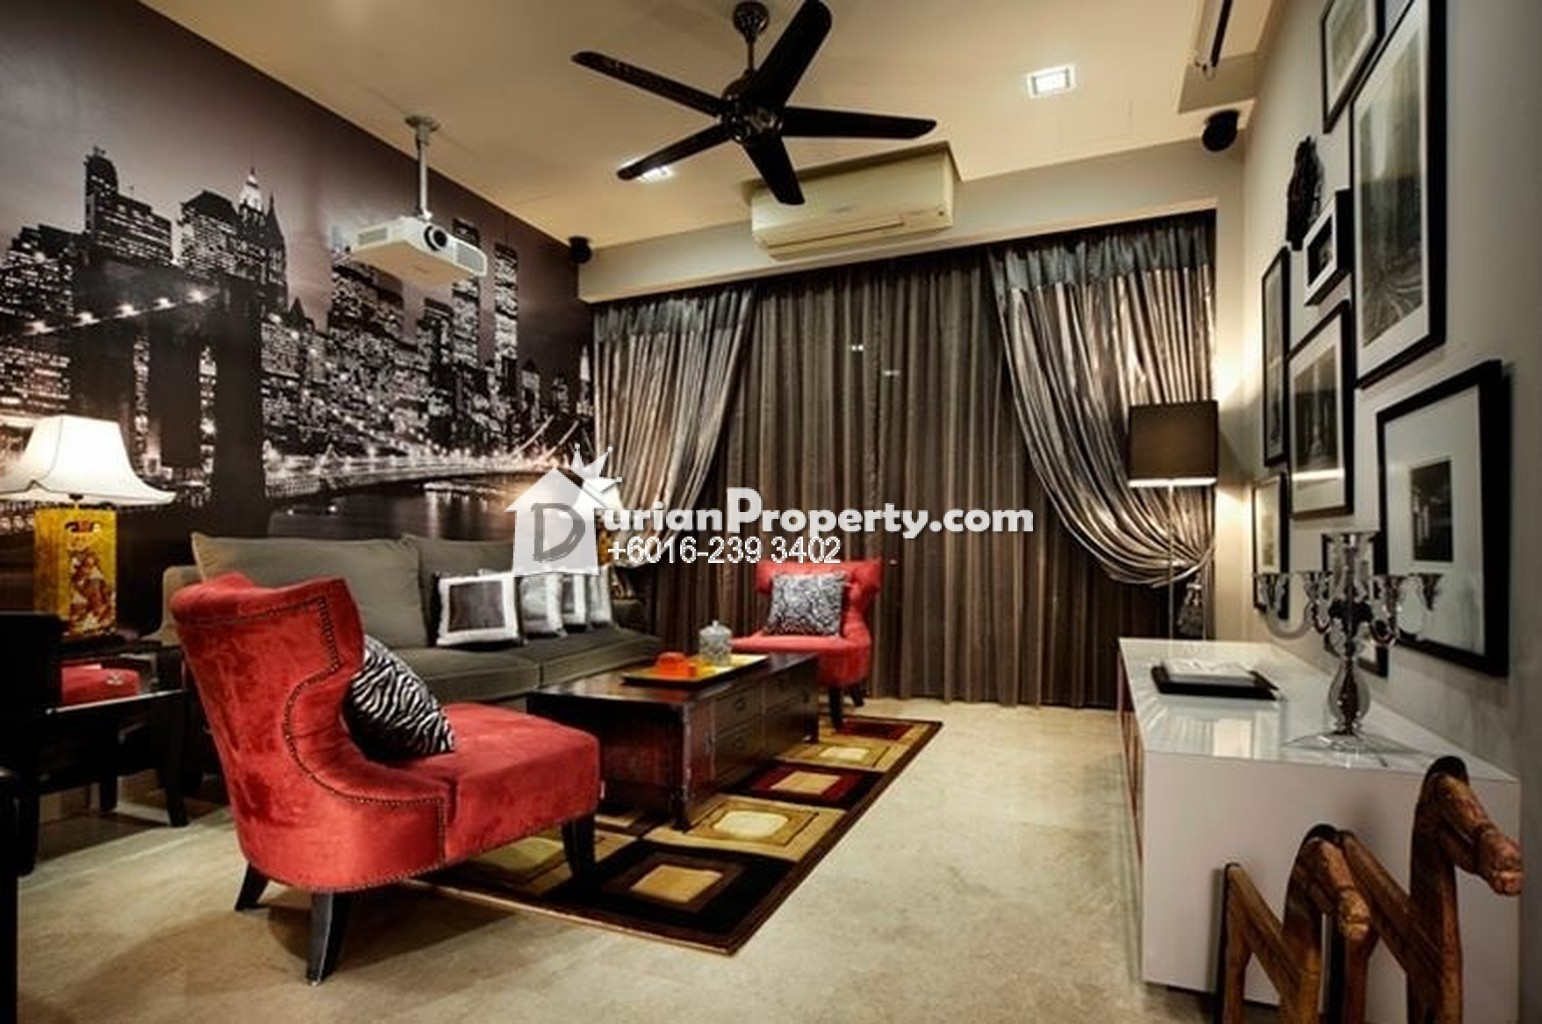 Serviced residence for sale at southville city bangi for for Aik sing interior decoration contractor